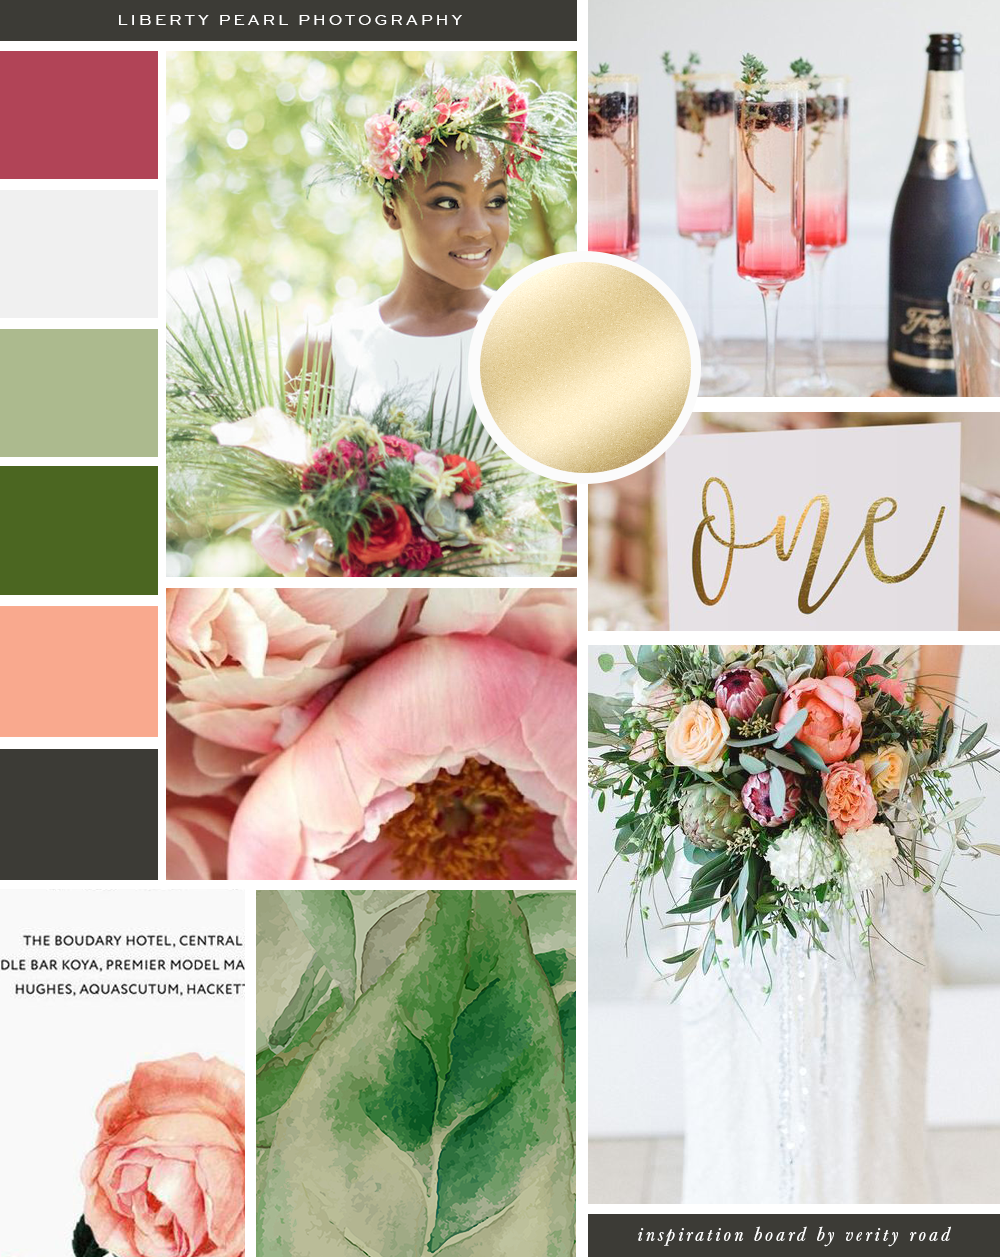 Mood board for Liberty pearl photography, wedding photographer, destination weddings, wedding professionals, bridal business, wedding business, luxury feminine brand styling and web design for female entrepreneurs. exotic branding, Inspiration board of typography, calligraphy script font, serif, green, sage, brown, deep red, coral, bright color palette, wedding stylist, wedding industry, femininity, FLORAL pattern, business owner, blogger. See more for brand board, brand style guide,.